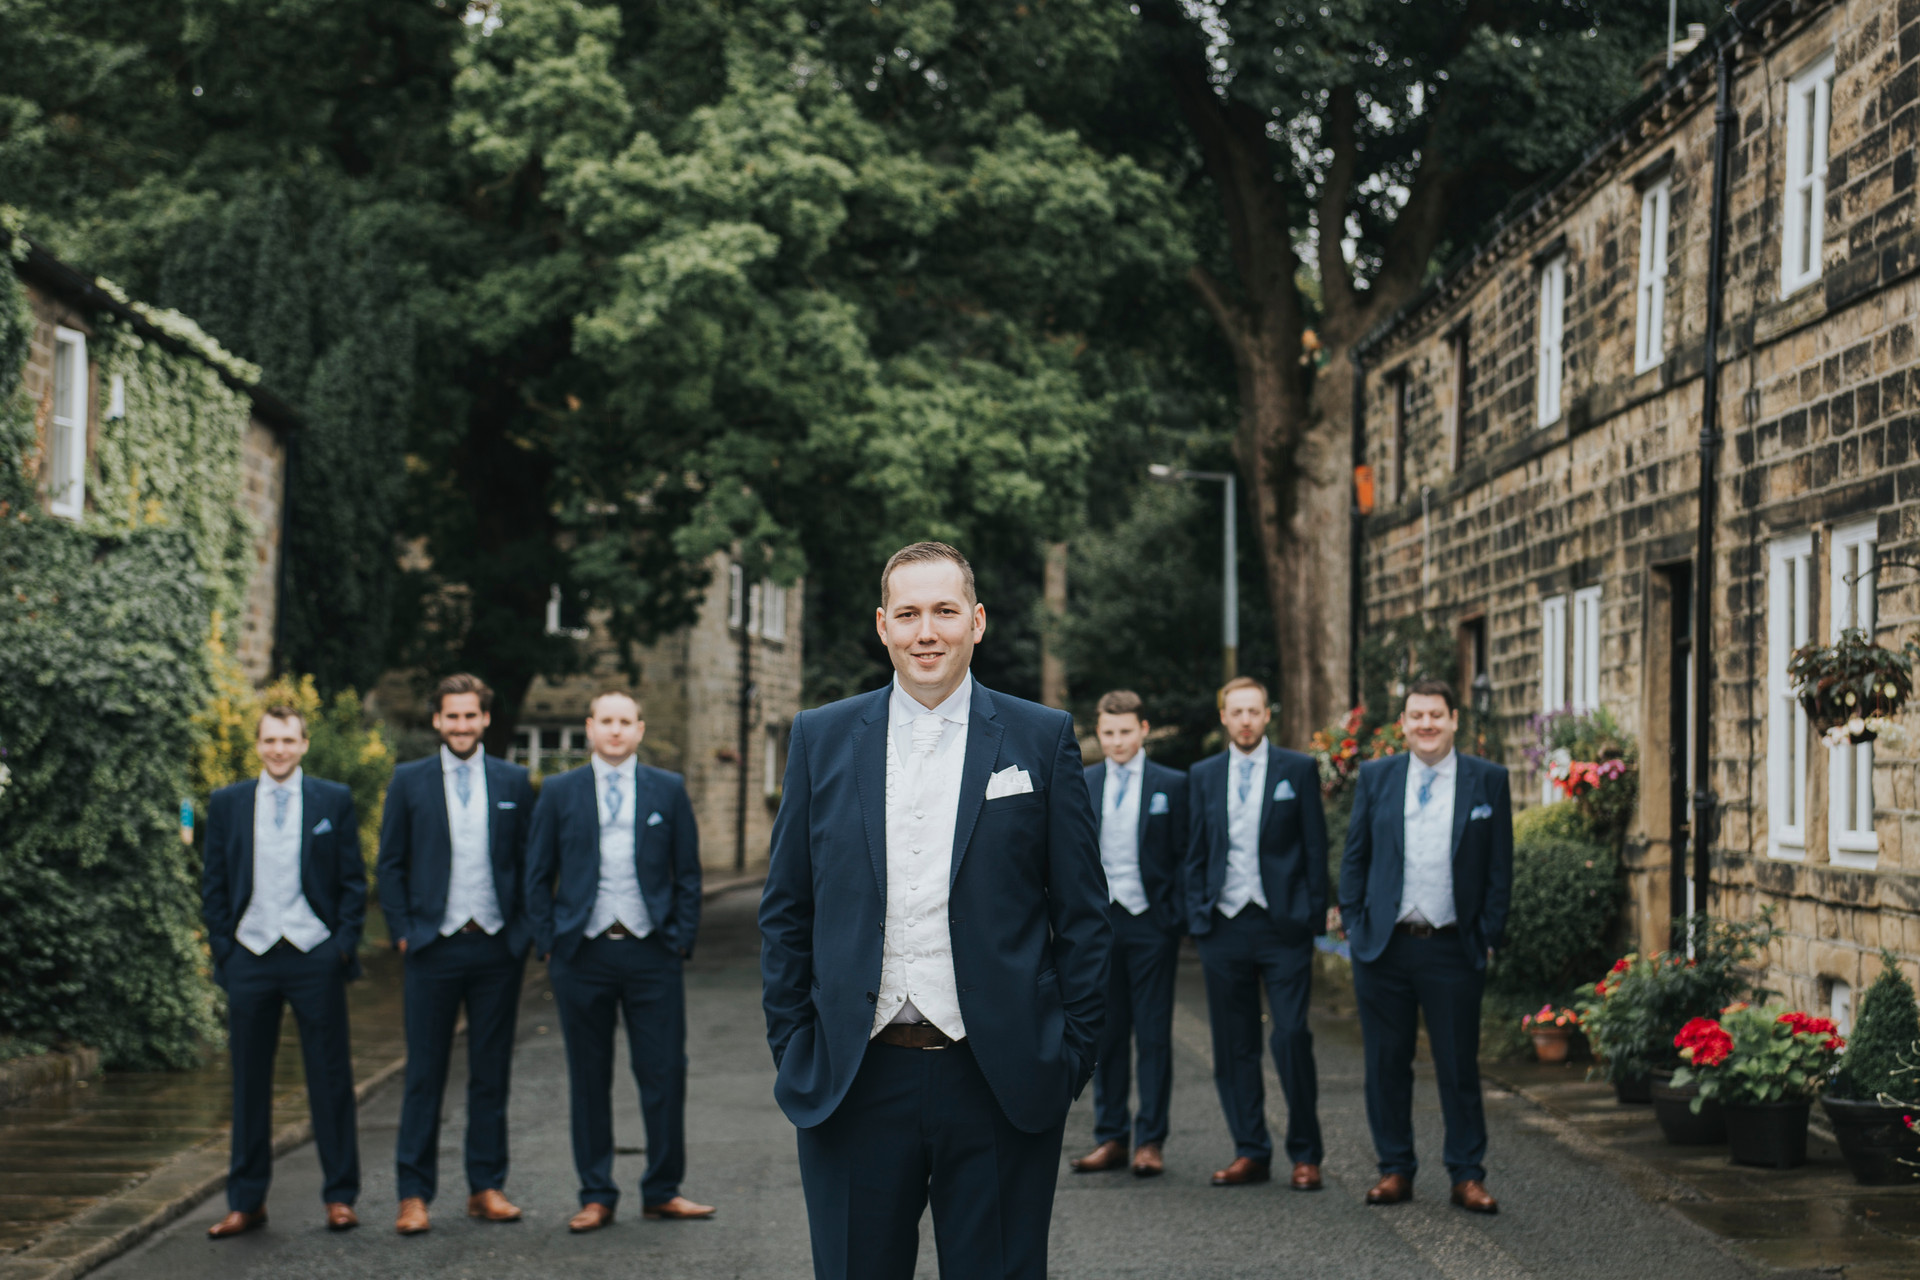 Esholt wedding photographer